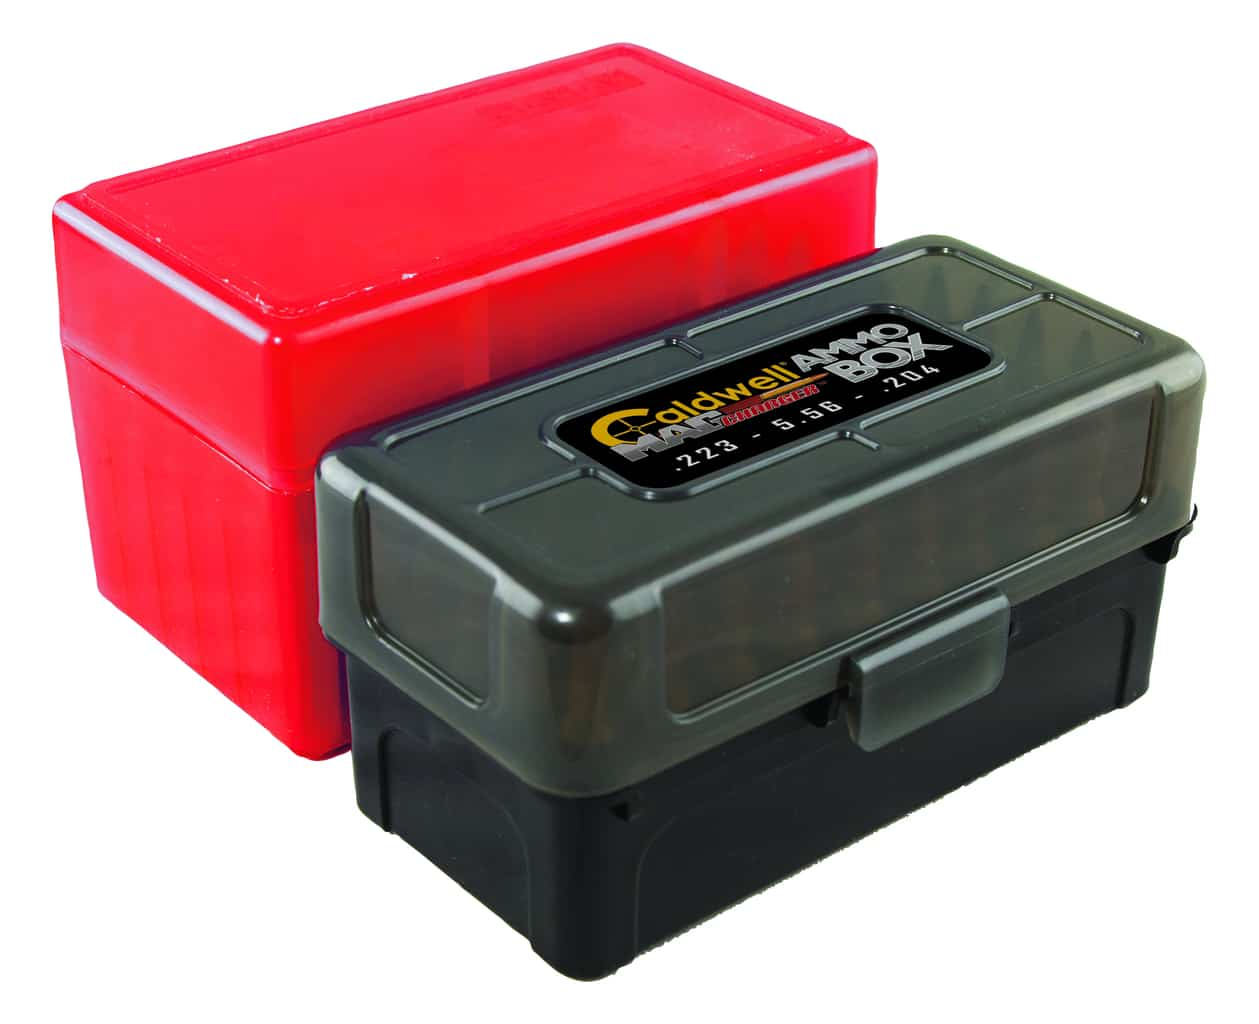 Caldwell® AK Mag Charger™ Ammo Box-7.62x39 (5 Pack) - 397623 Mag Charger Ammo Box 223 vs Old